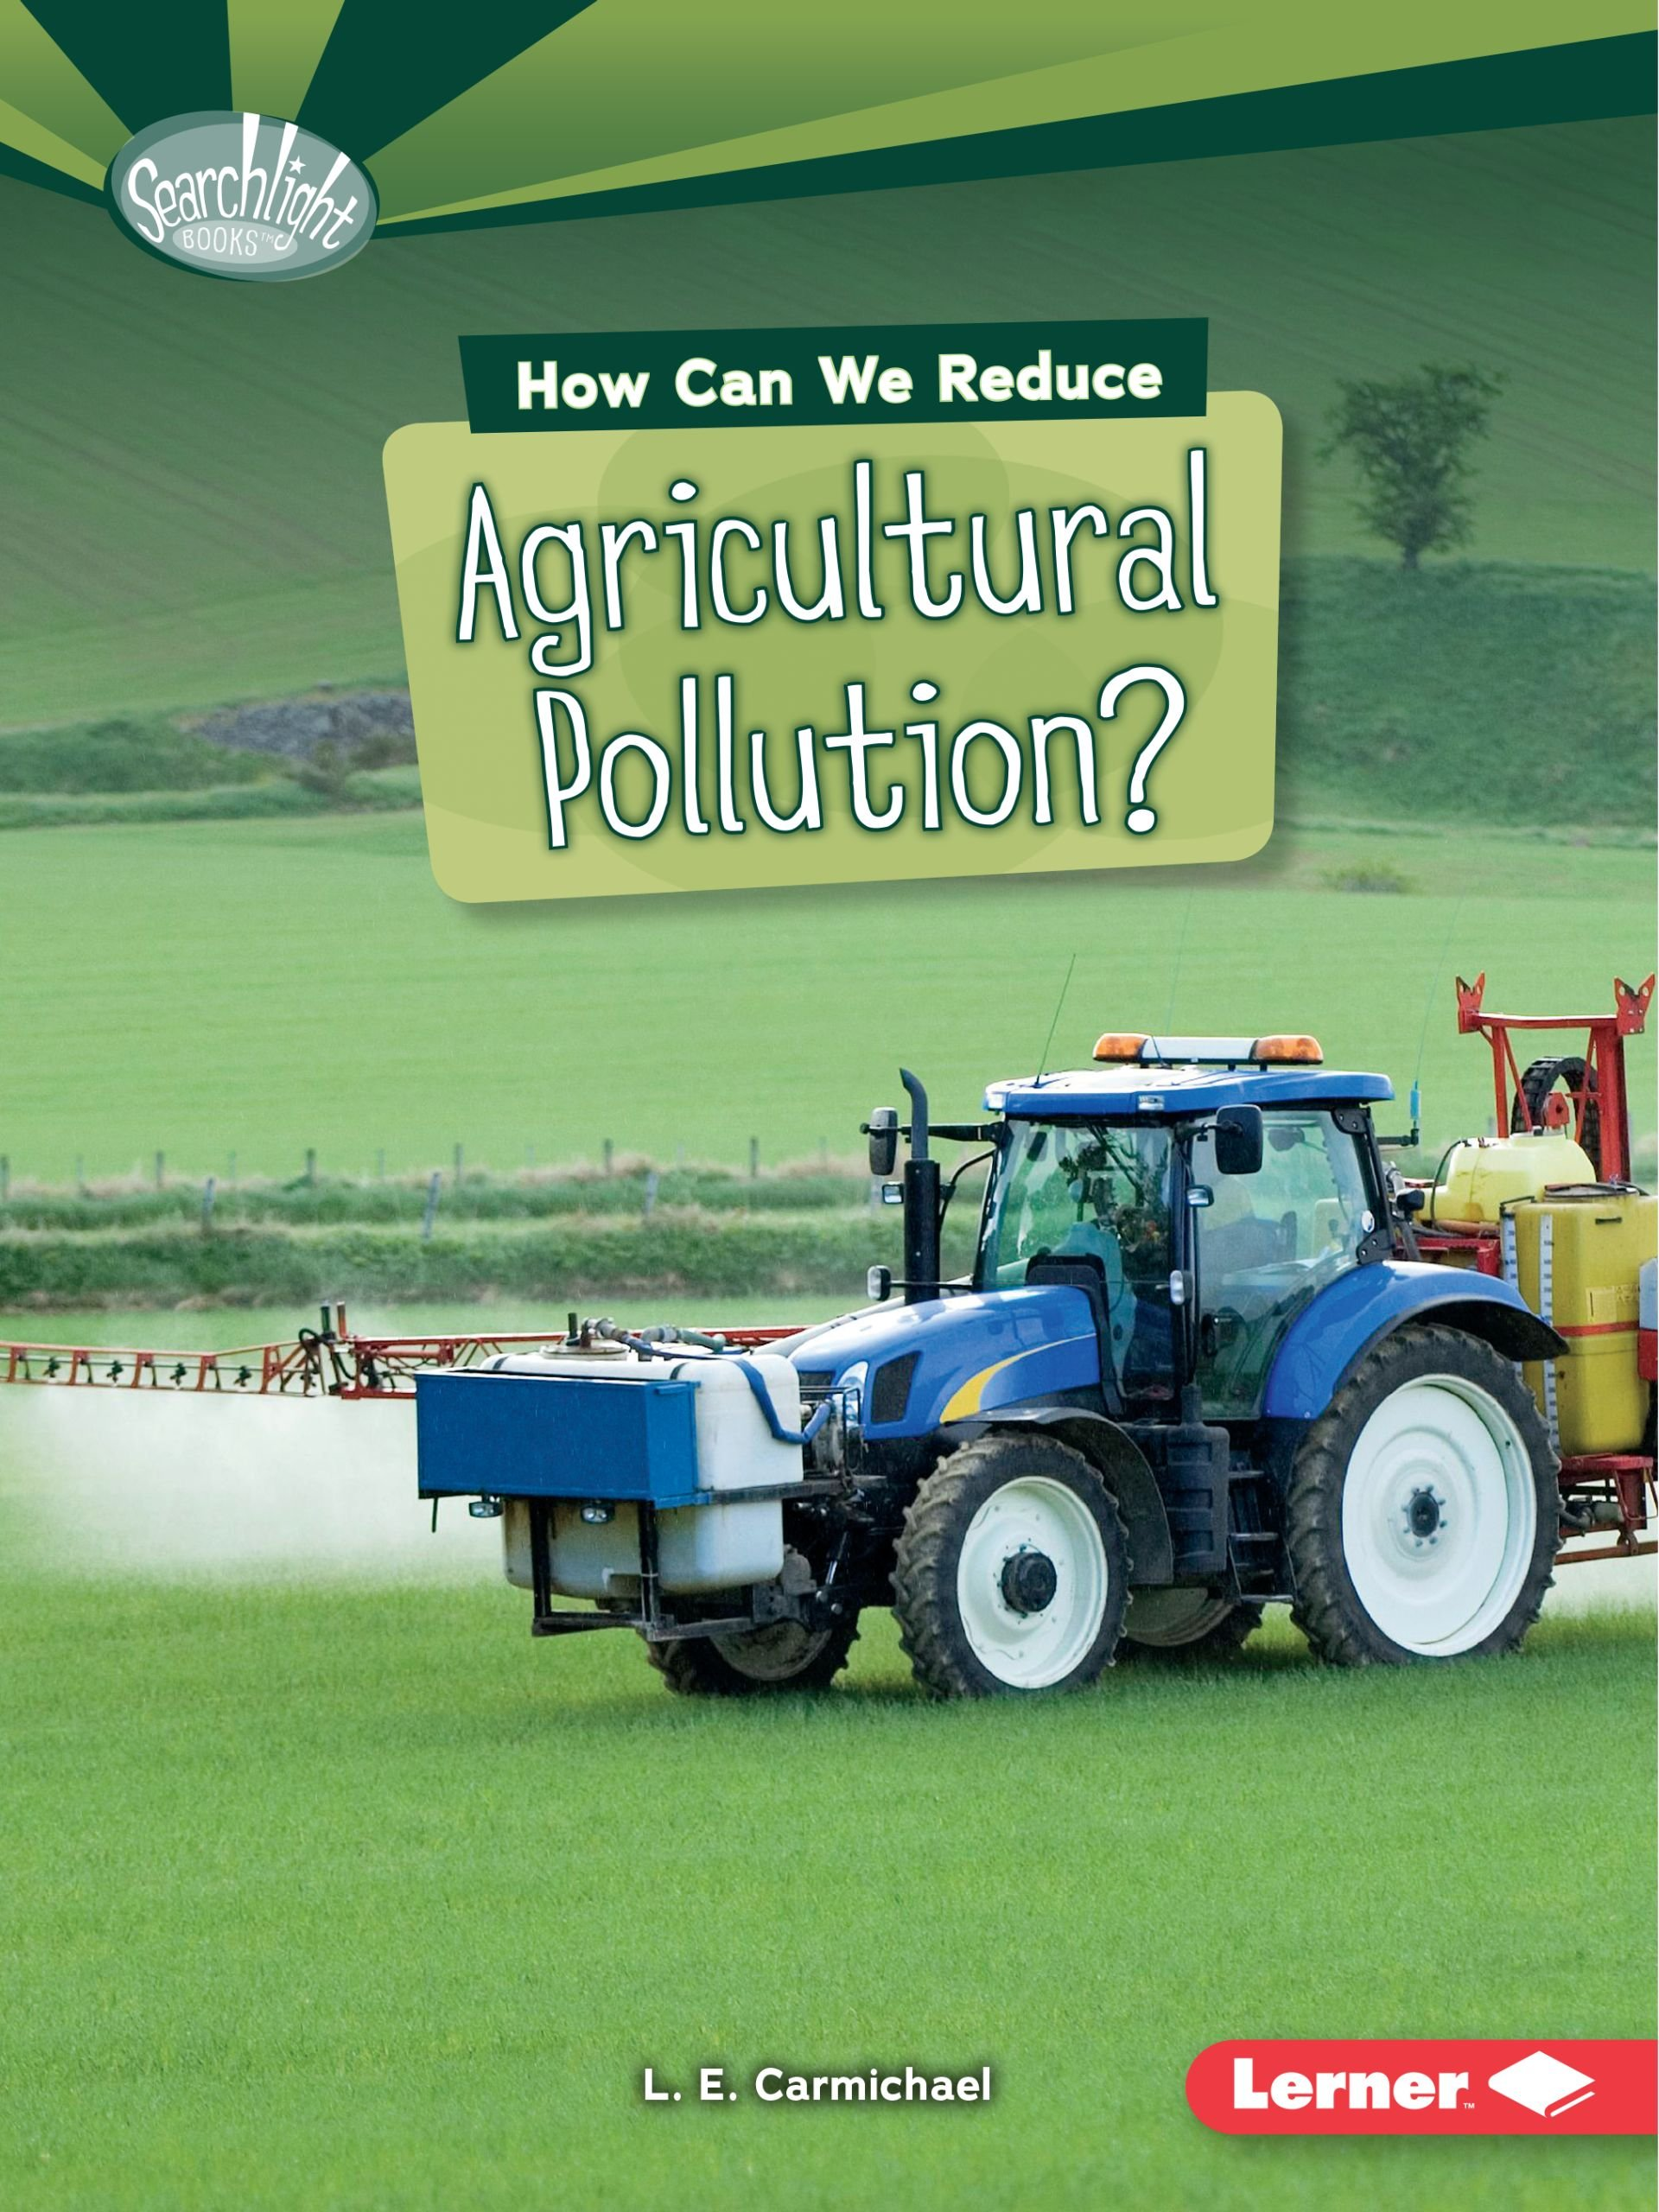 How Can We Reduce Agricultural Pollution? (Searchlight Books What